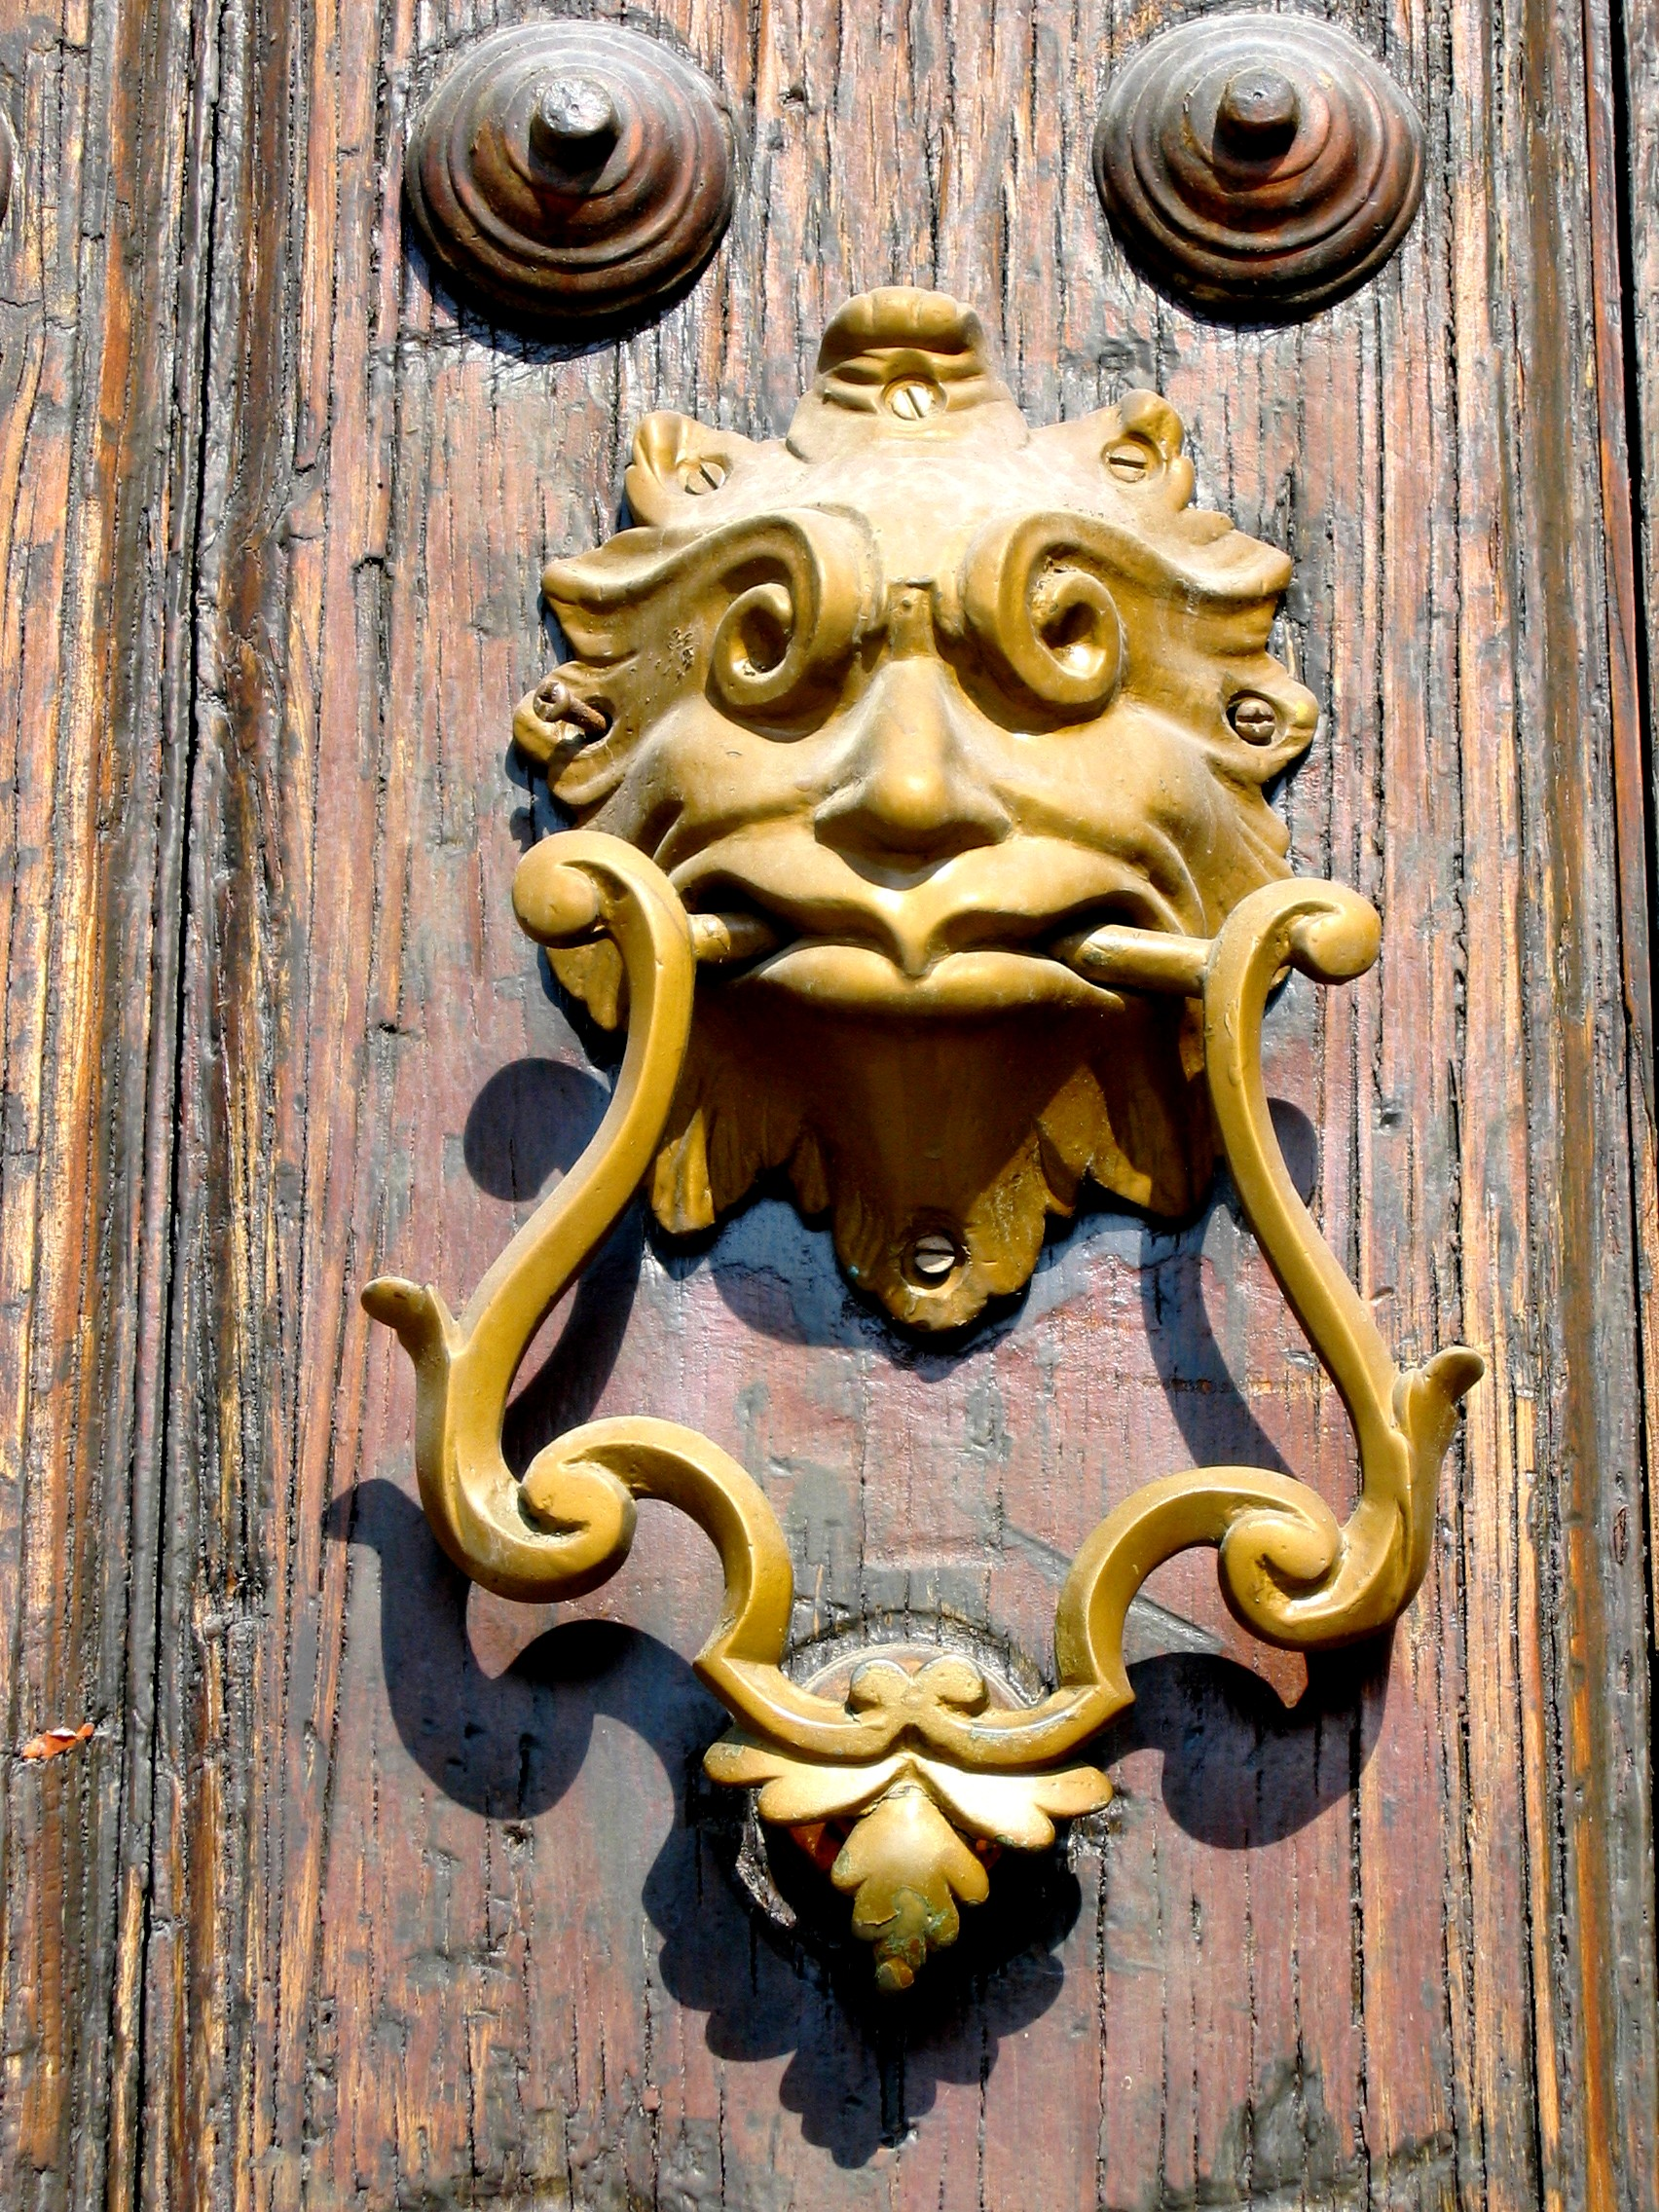 File:Ornate Cuban Door Knocker